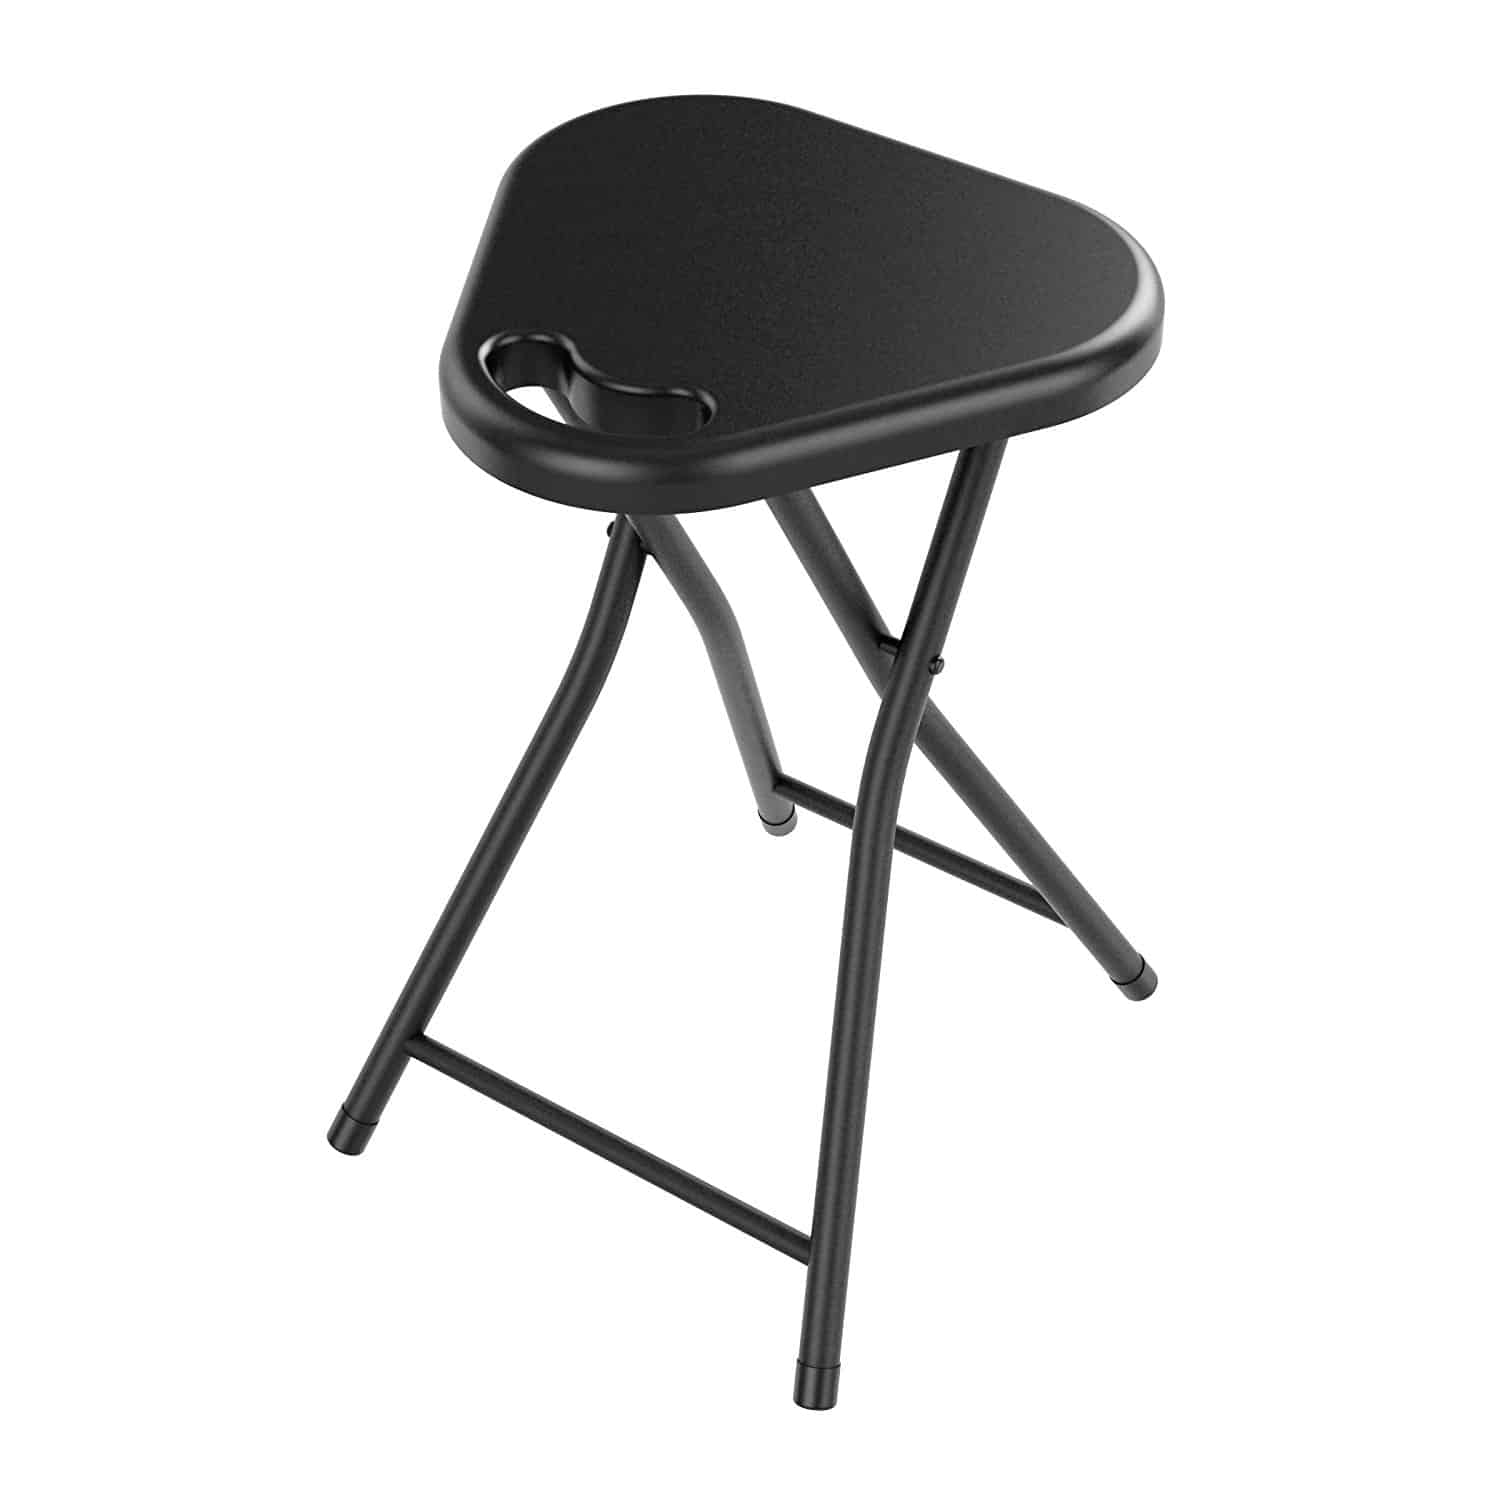 Black folding stool with unique triangular seat shape and durable metal legs.